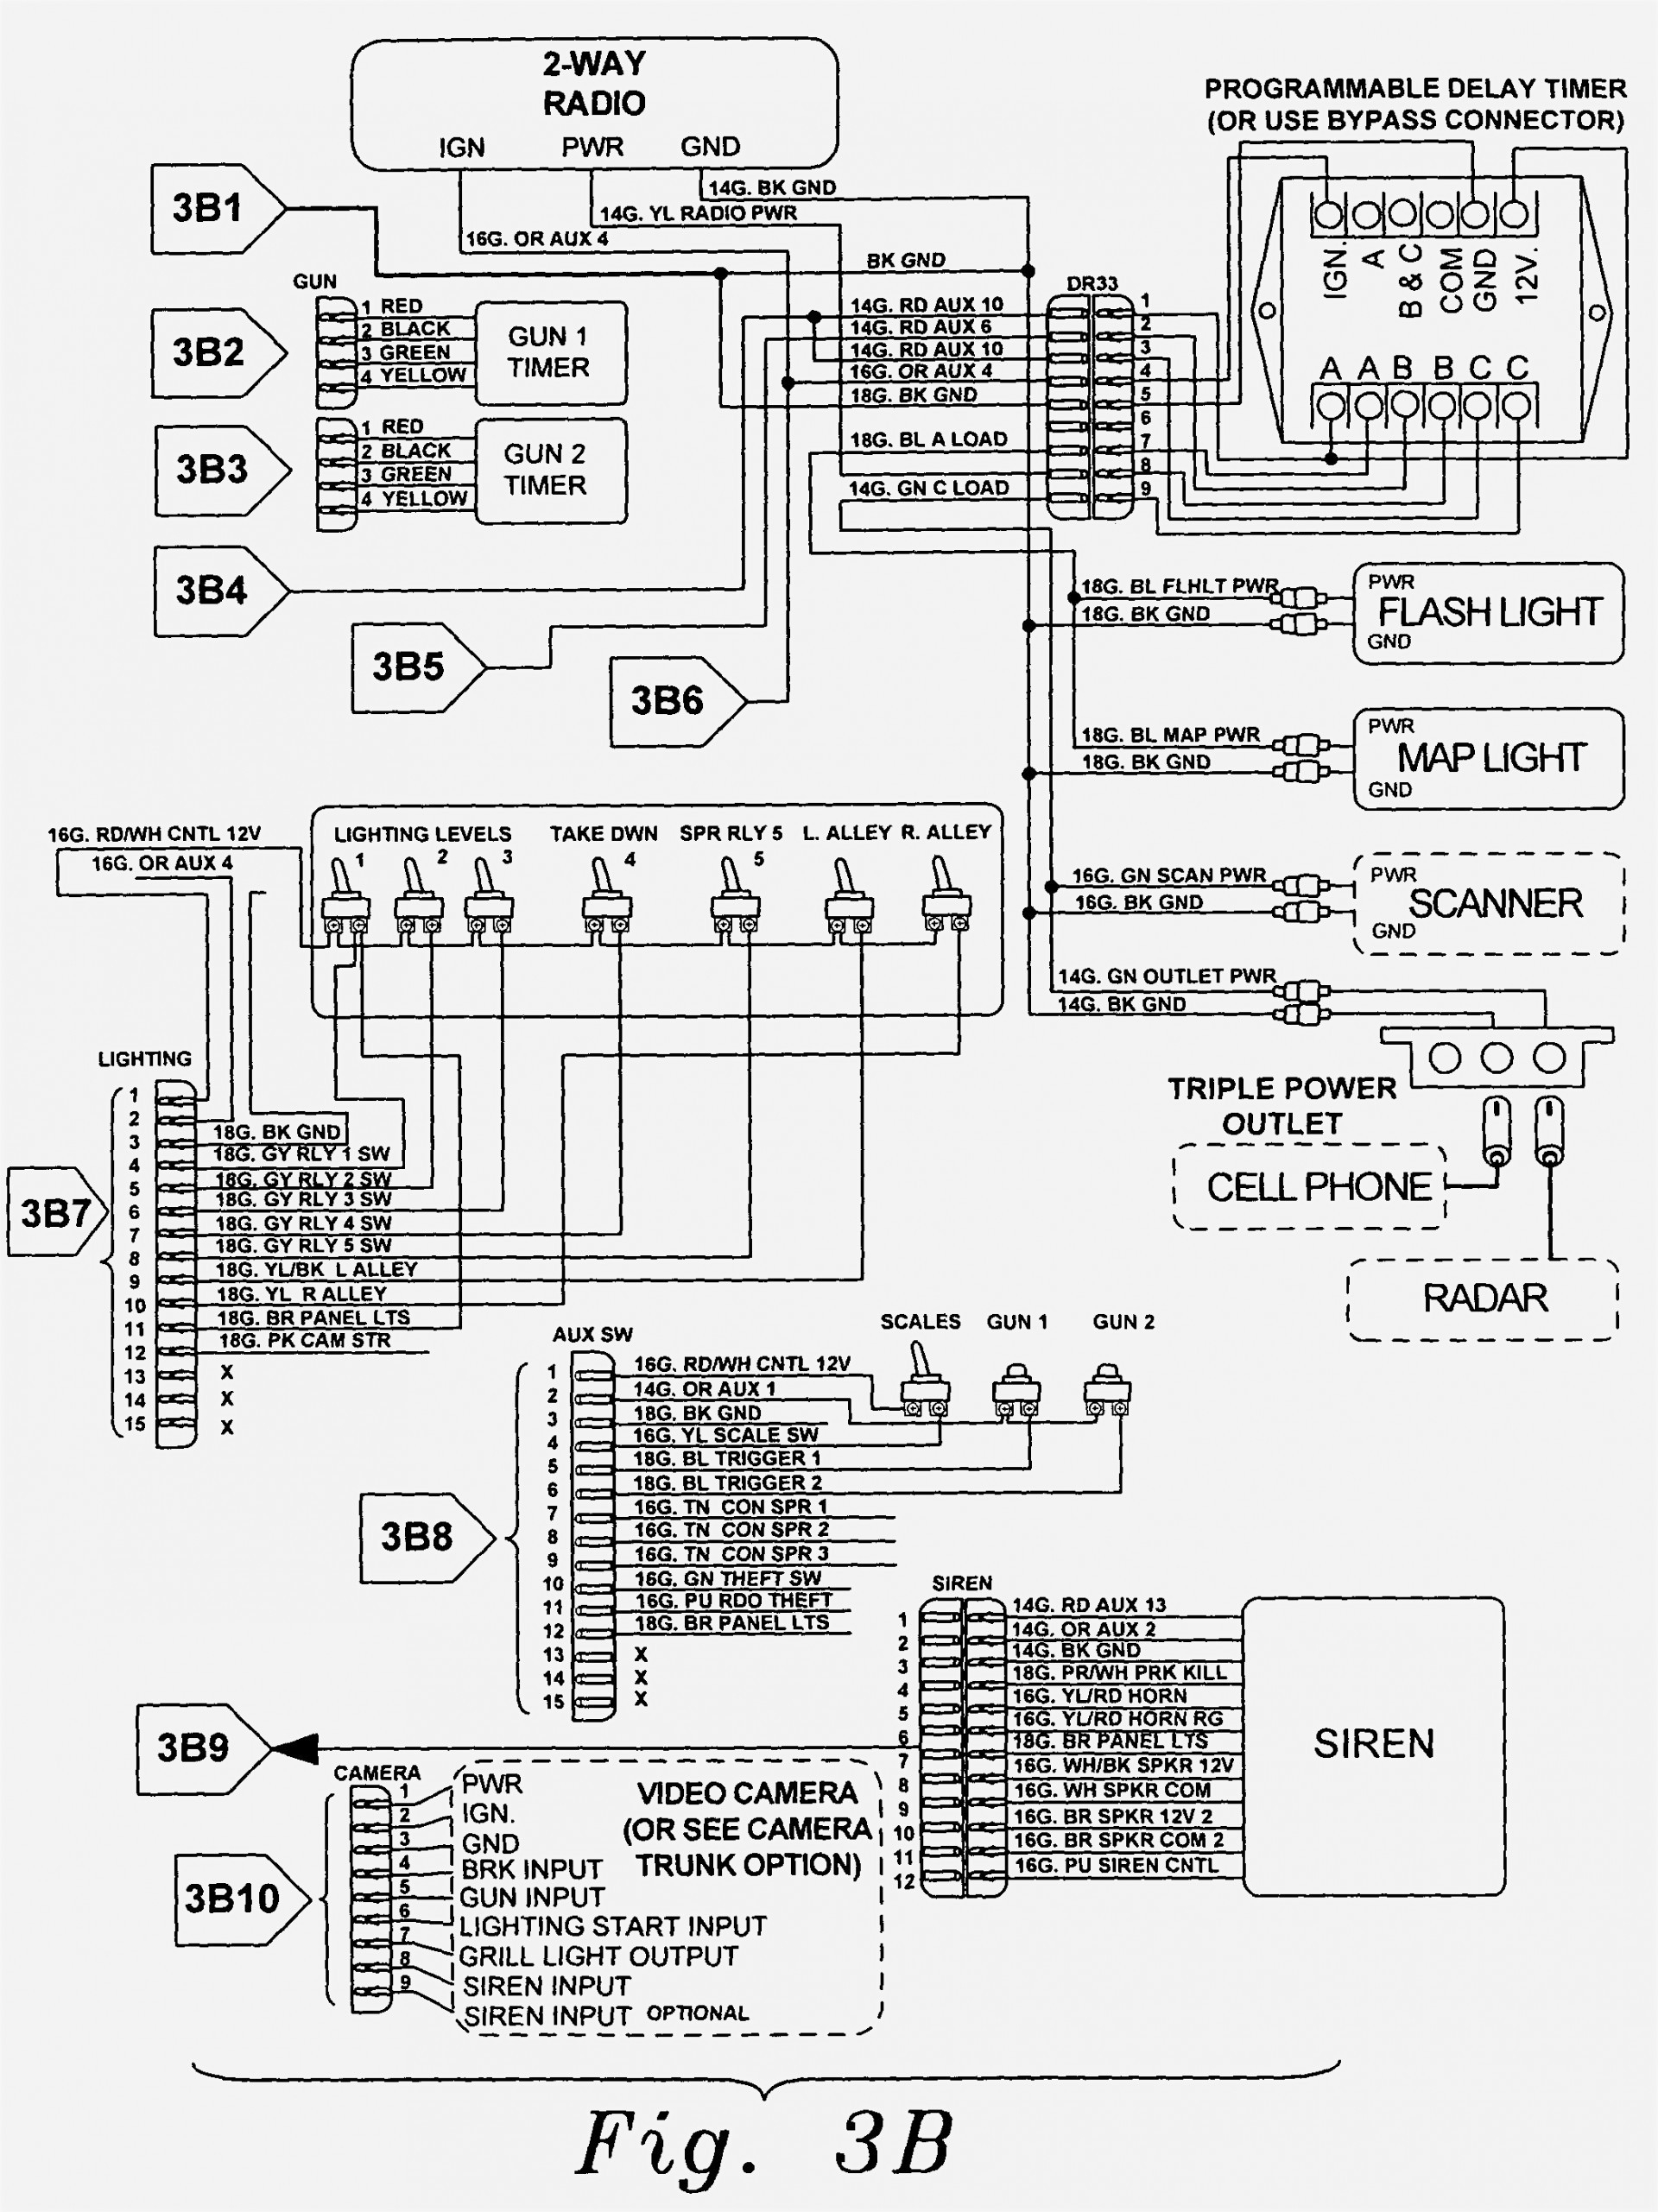 whelen liberty lightbar wiring diagram Collection-Wiring Diagram for Whelen Light Bar Refrence Wiring Diagram for Whelen Edge 9000 Refrence Light Bar 3-h